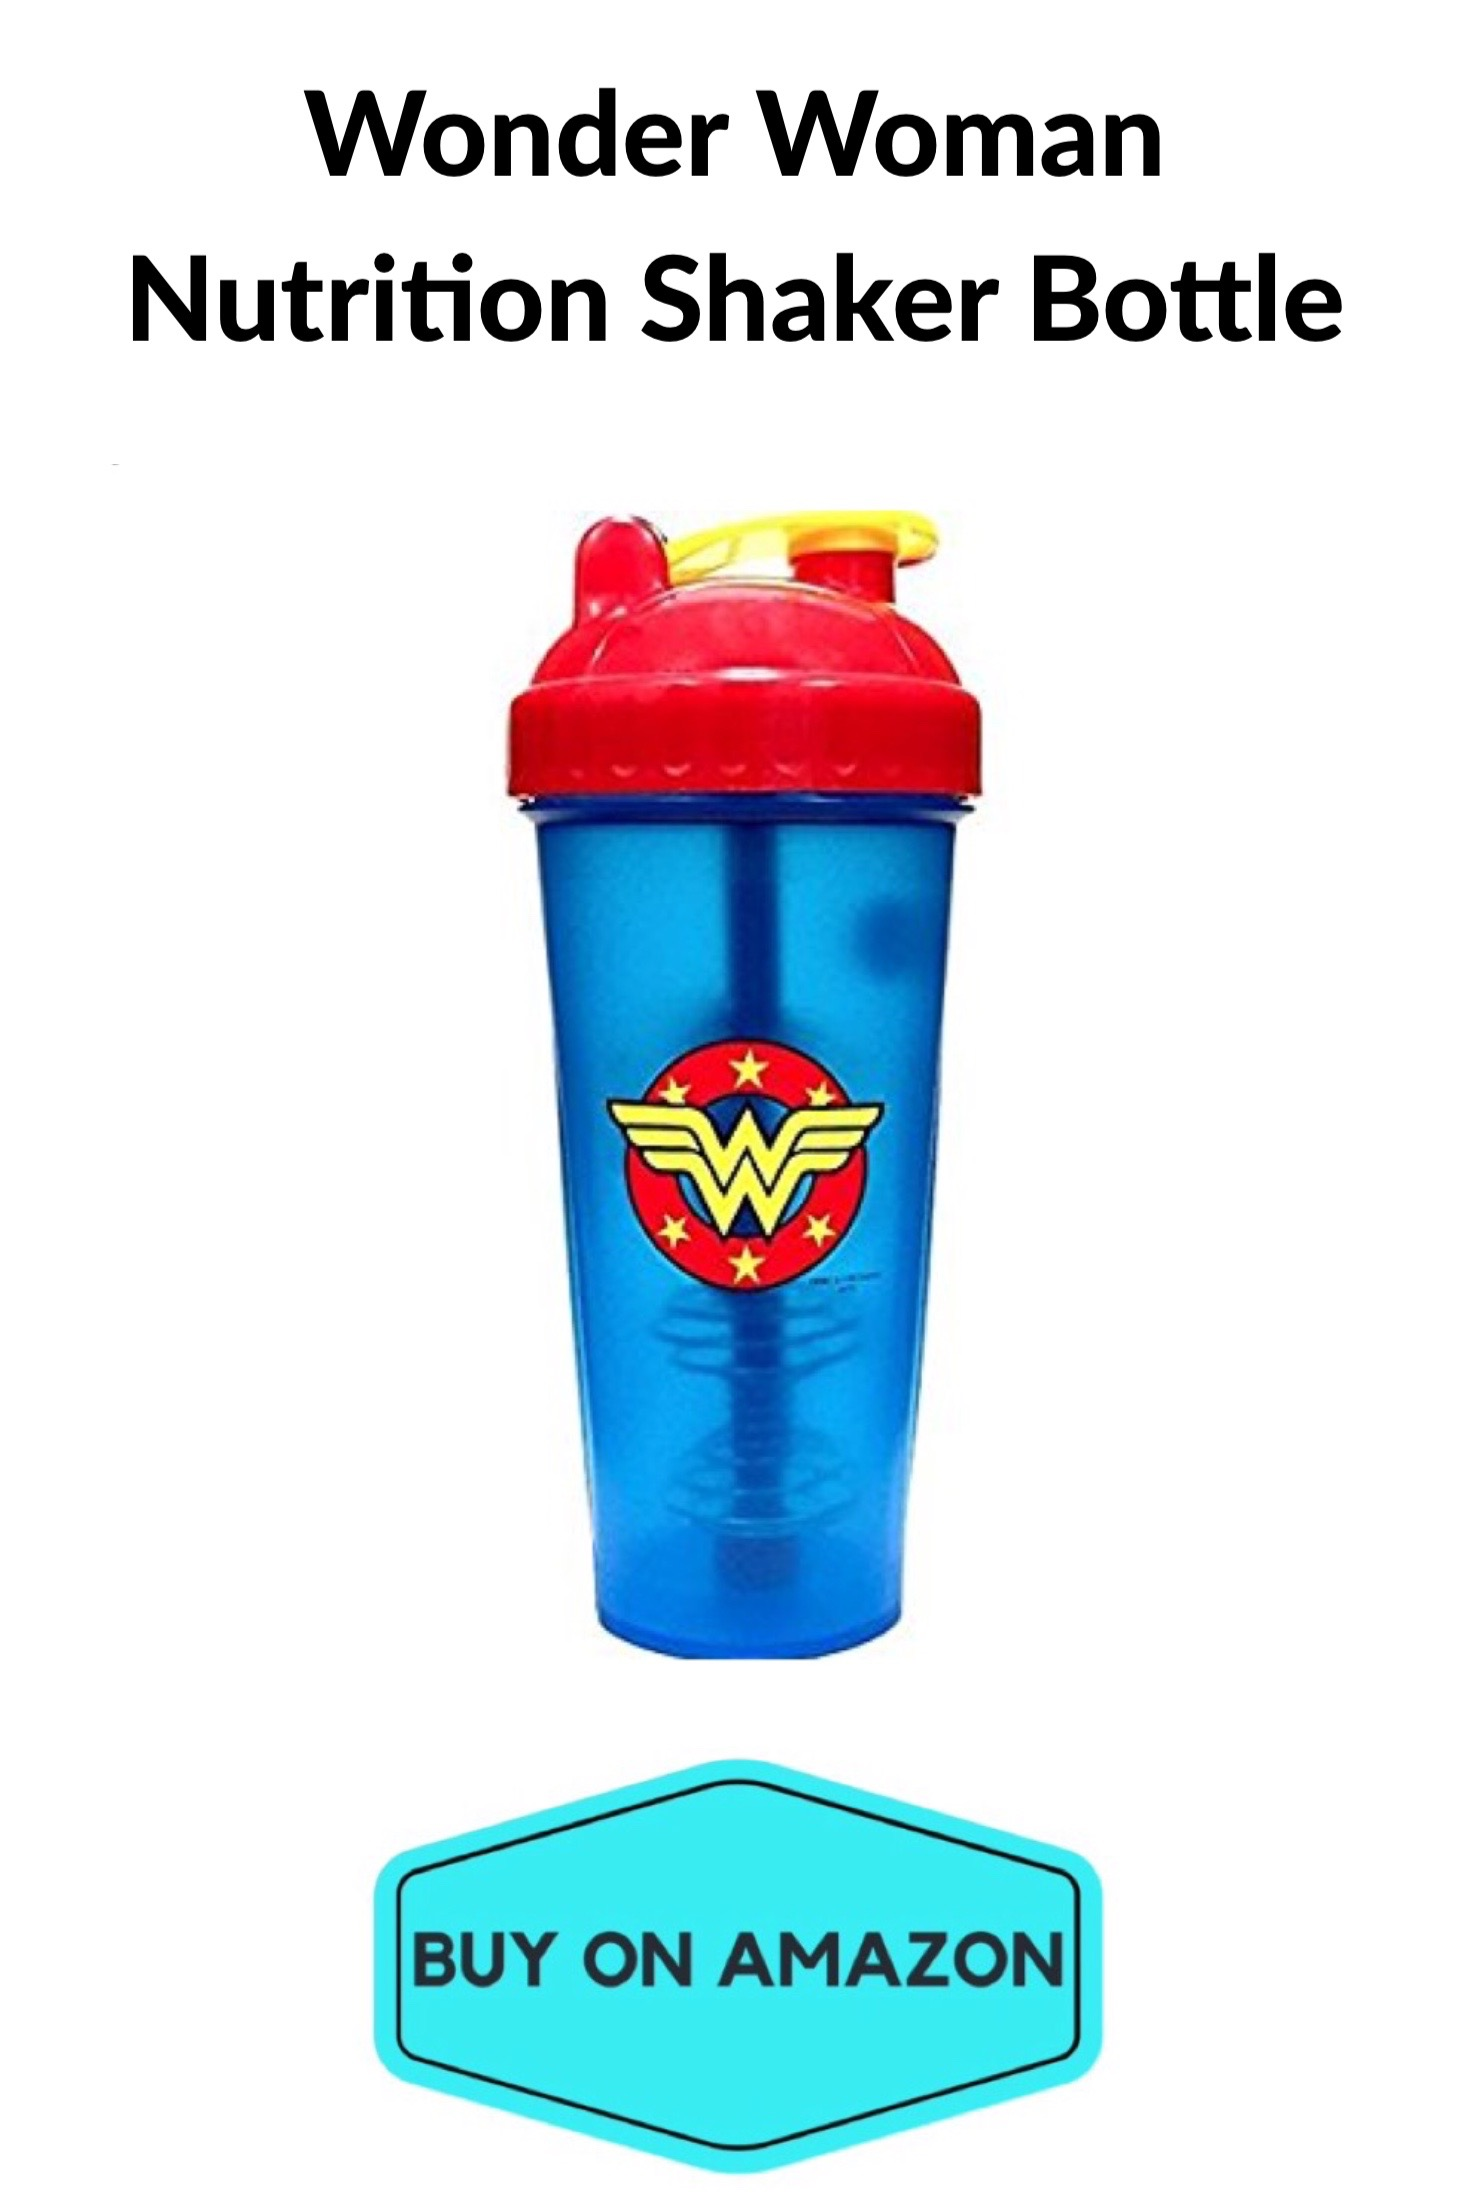 Wonder Woman Nutrition Shaker Bottle